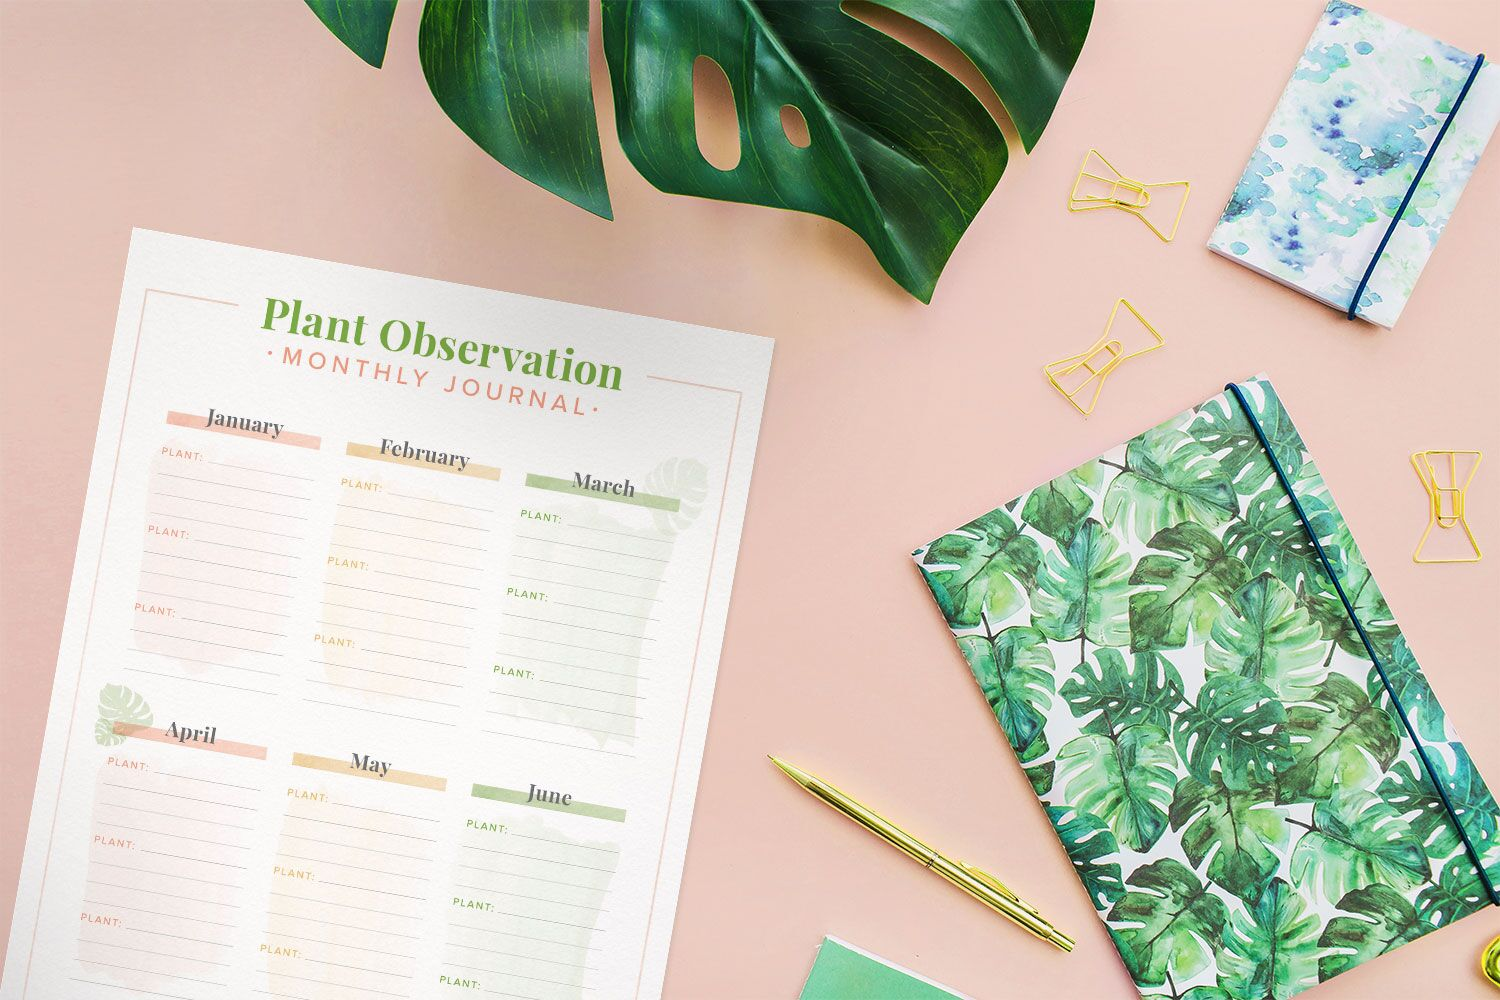 plant observation journal on a pink desk with a plant leaf in the image